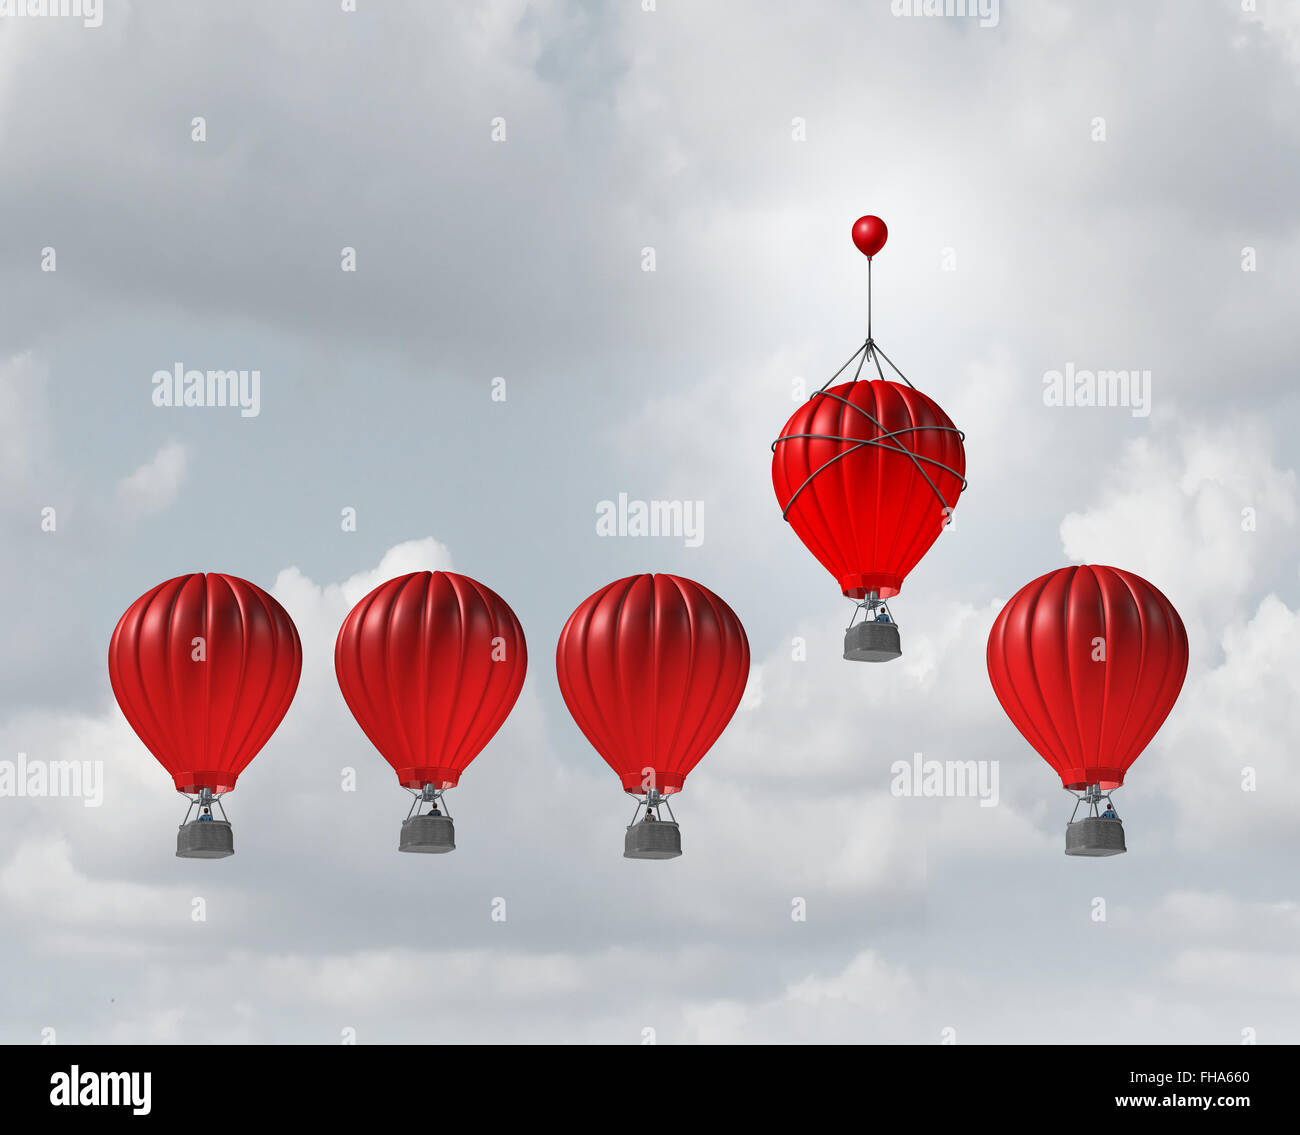 Competitive edge and business advantage concept as a group of hot air balloons racing to the top but an individualleader - Stock Image